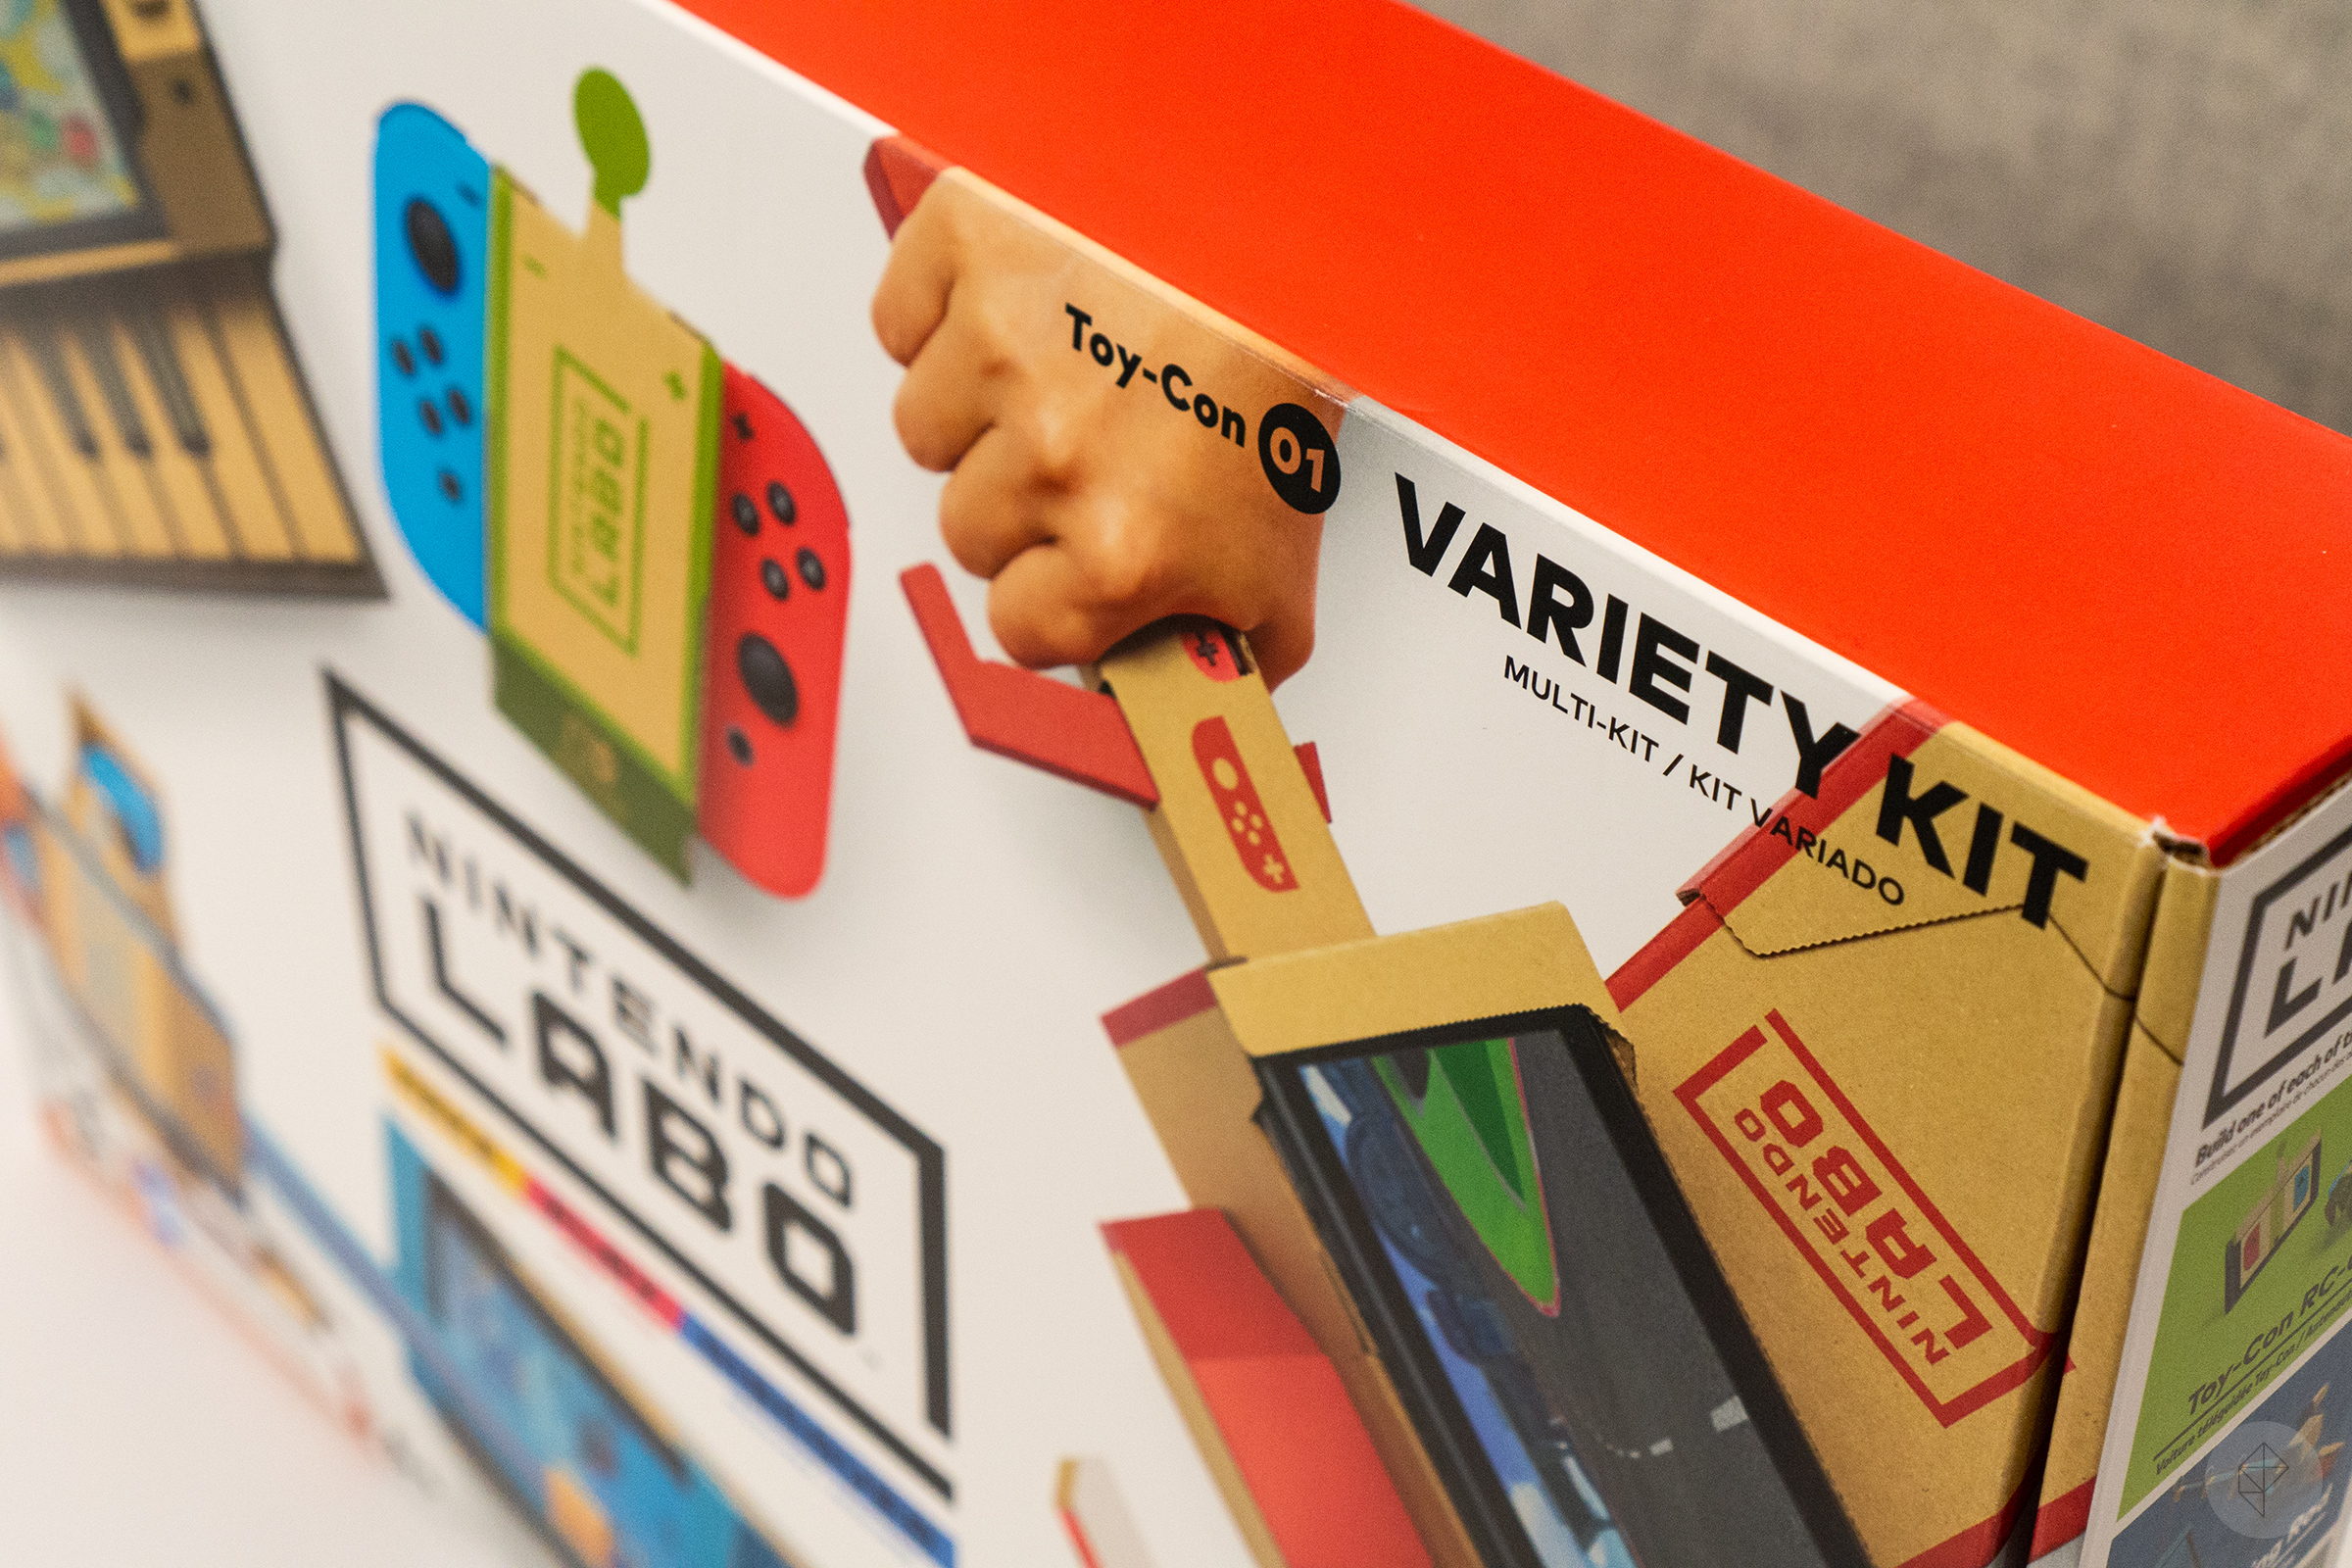 Nintendo Labo - angle photo of top right corner of box, with 'Toy-Con 01 Variety Kit' visible